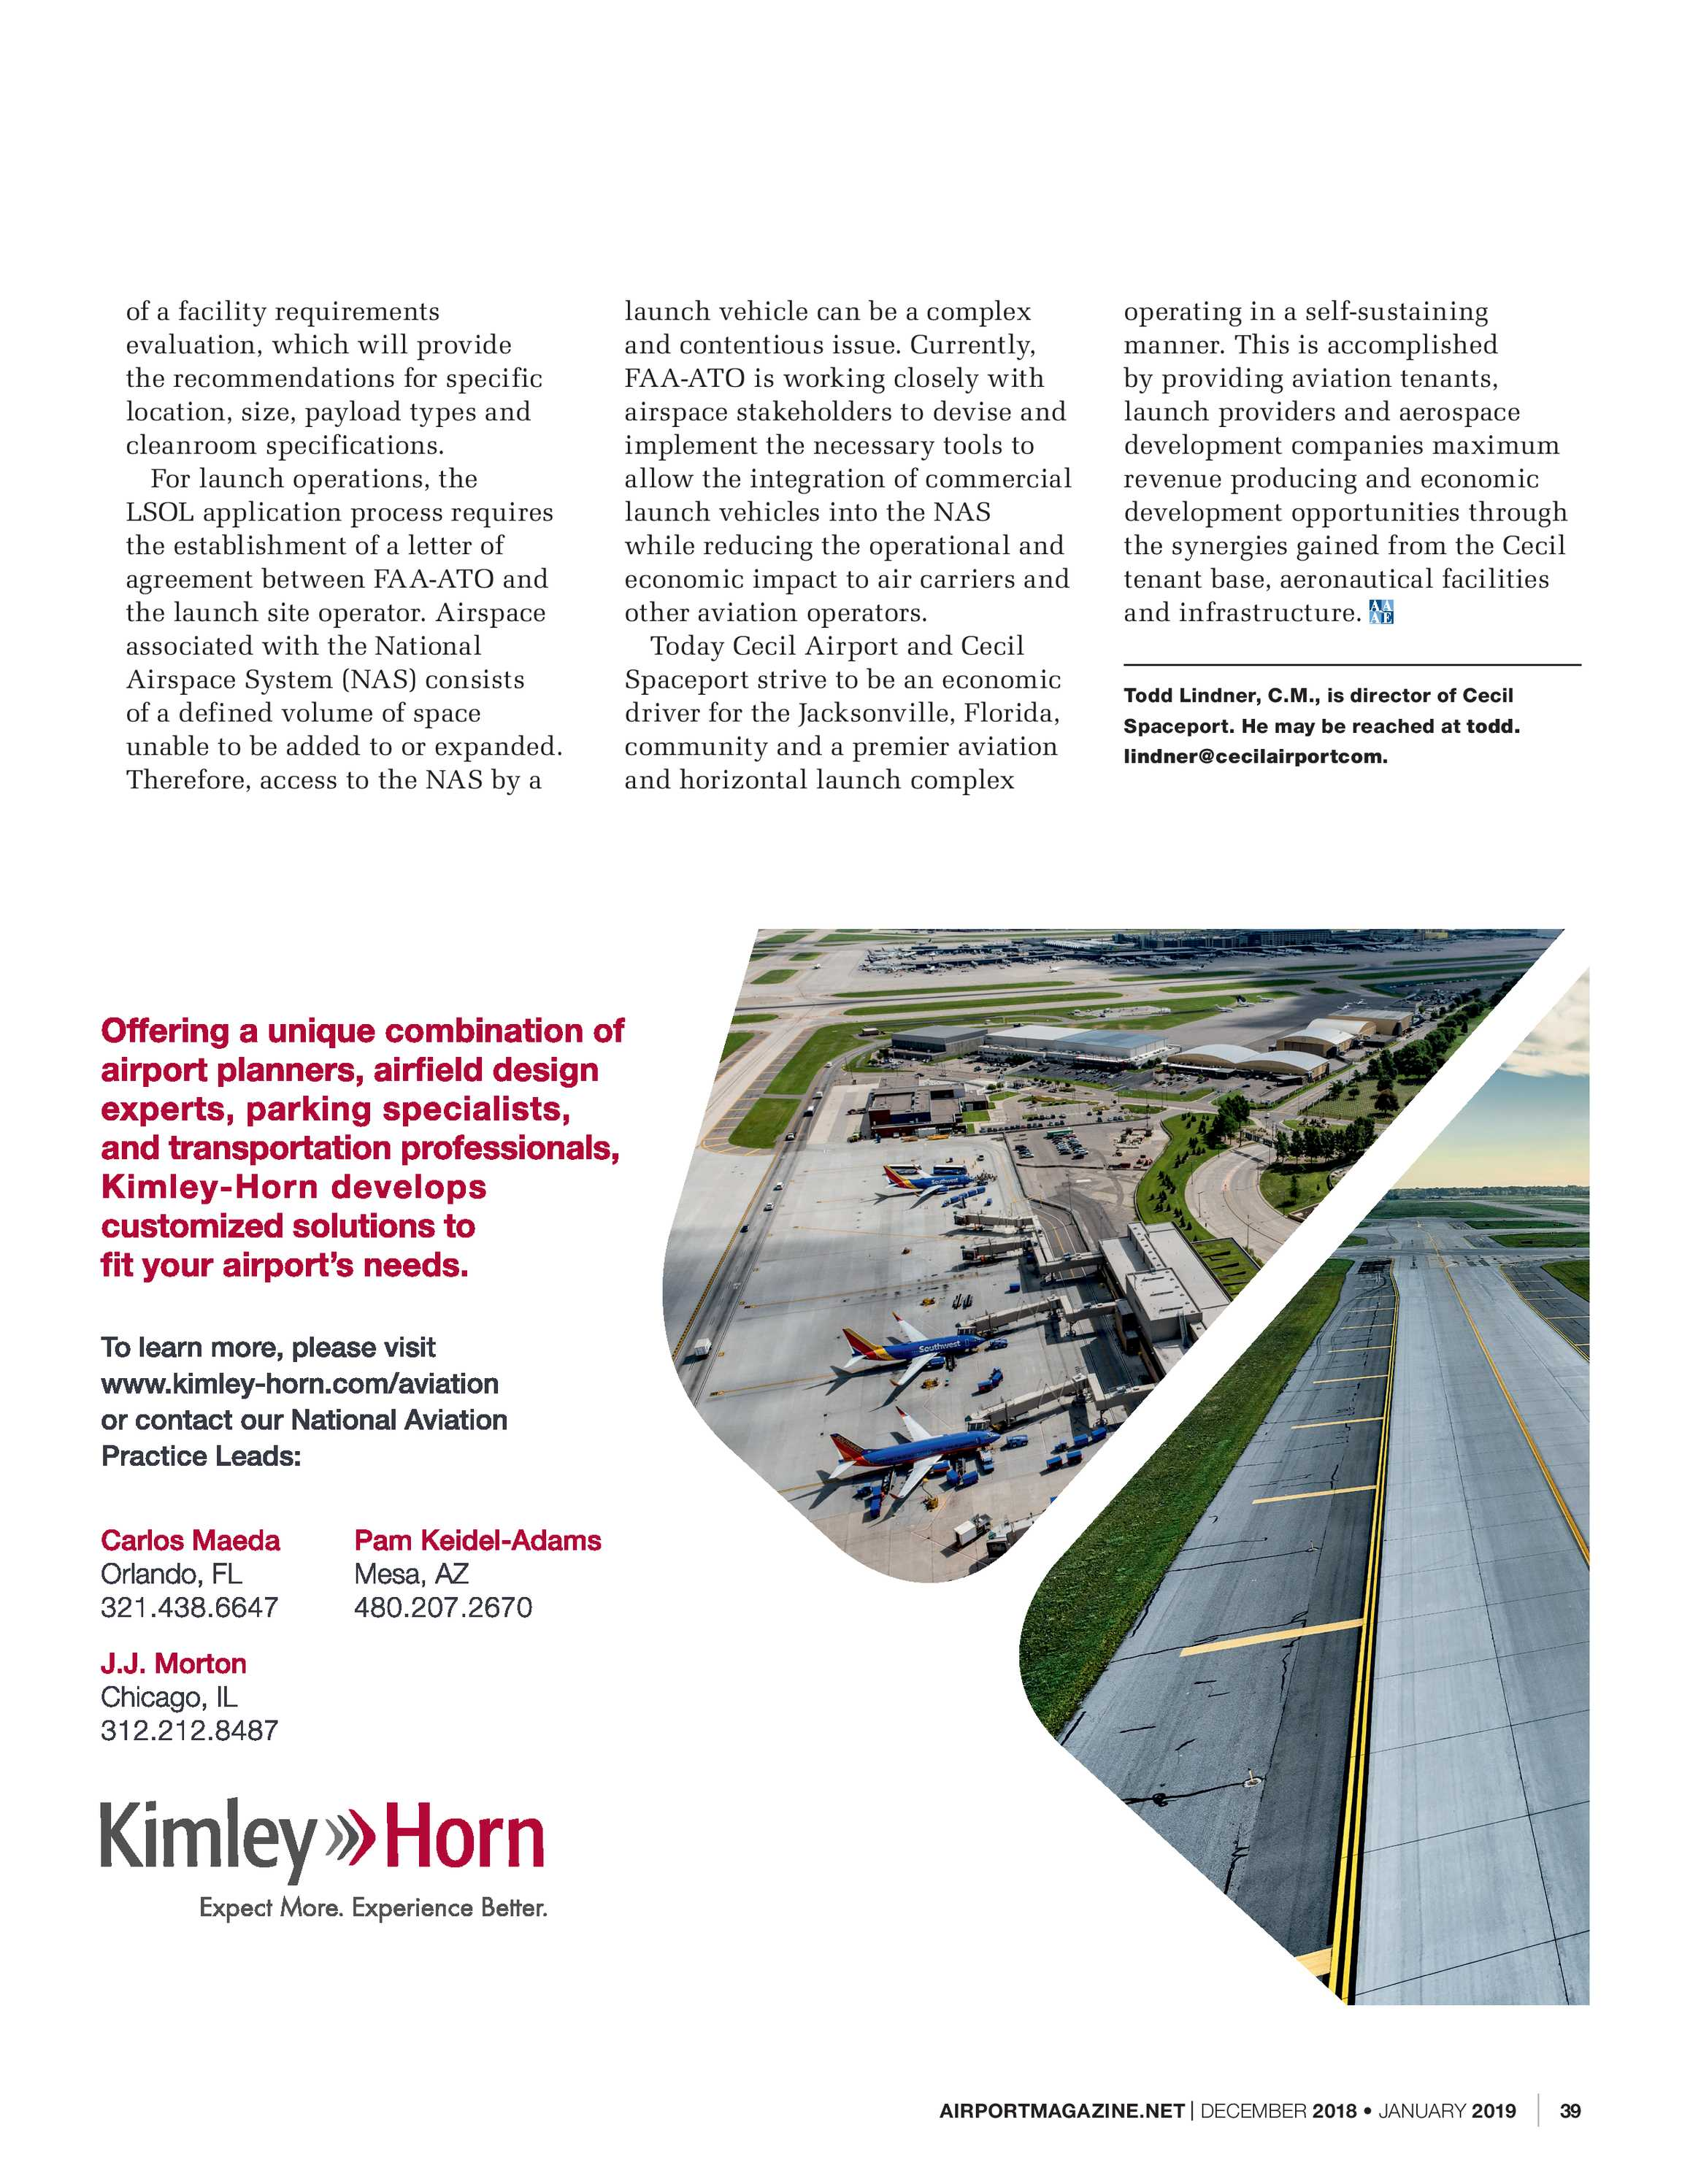 Airport Magazine - December 2018/January 2019 - page 38